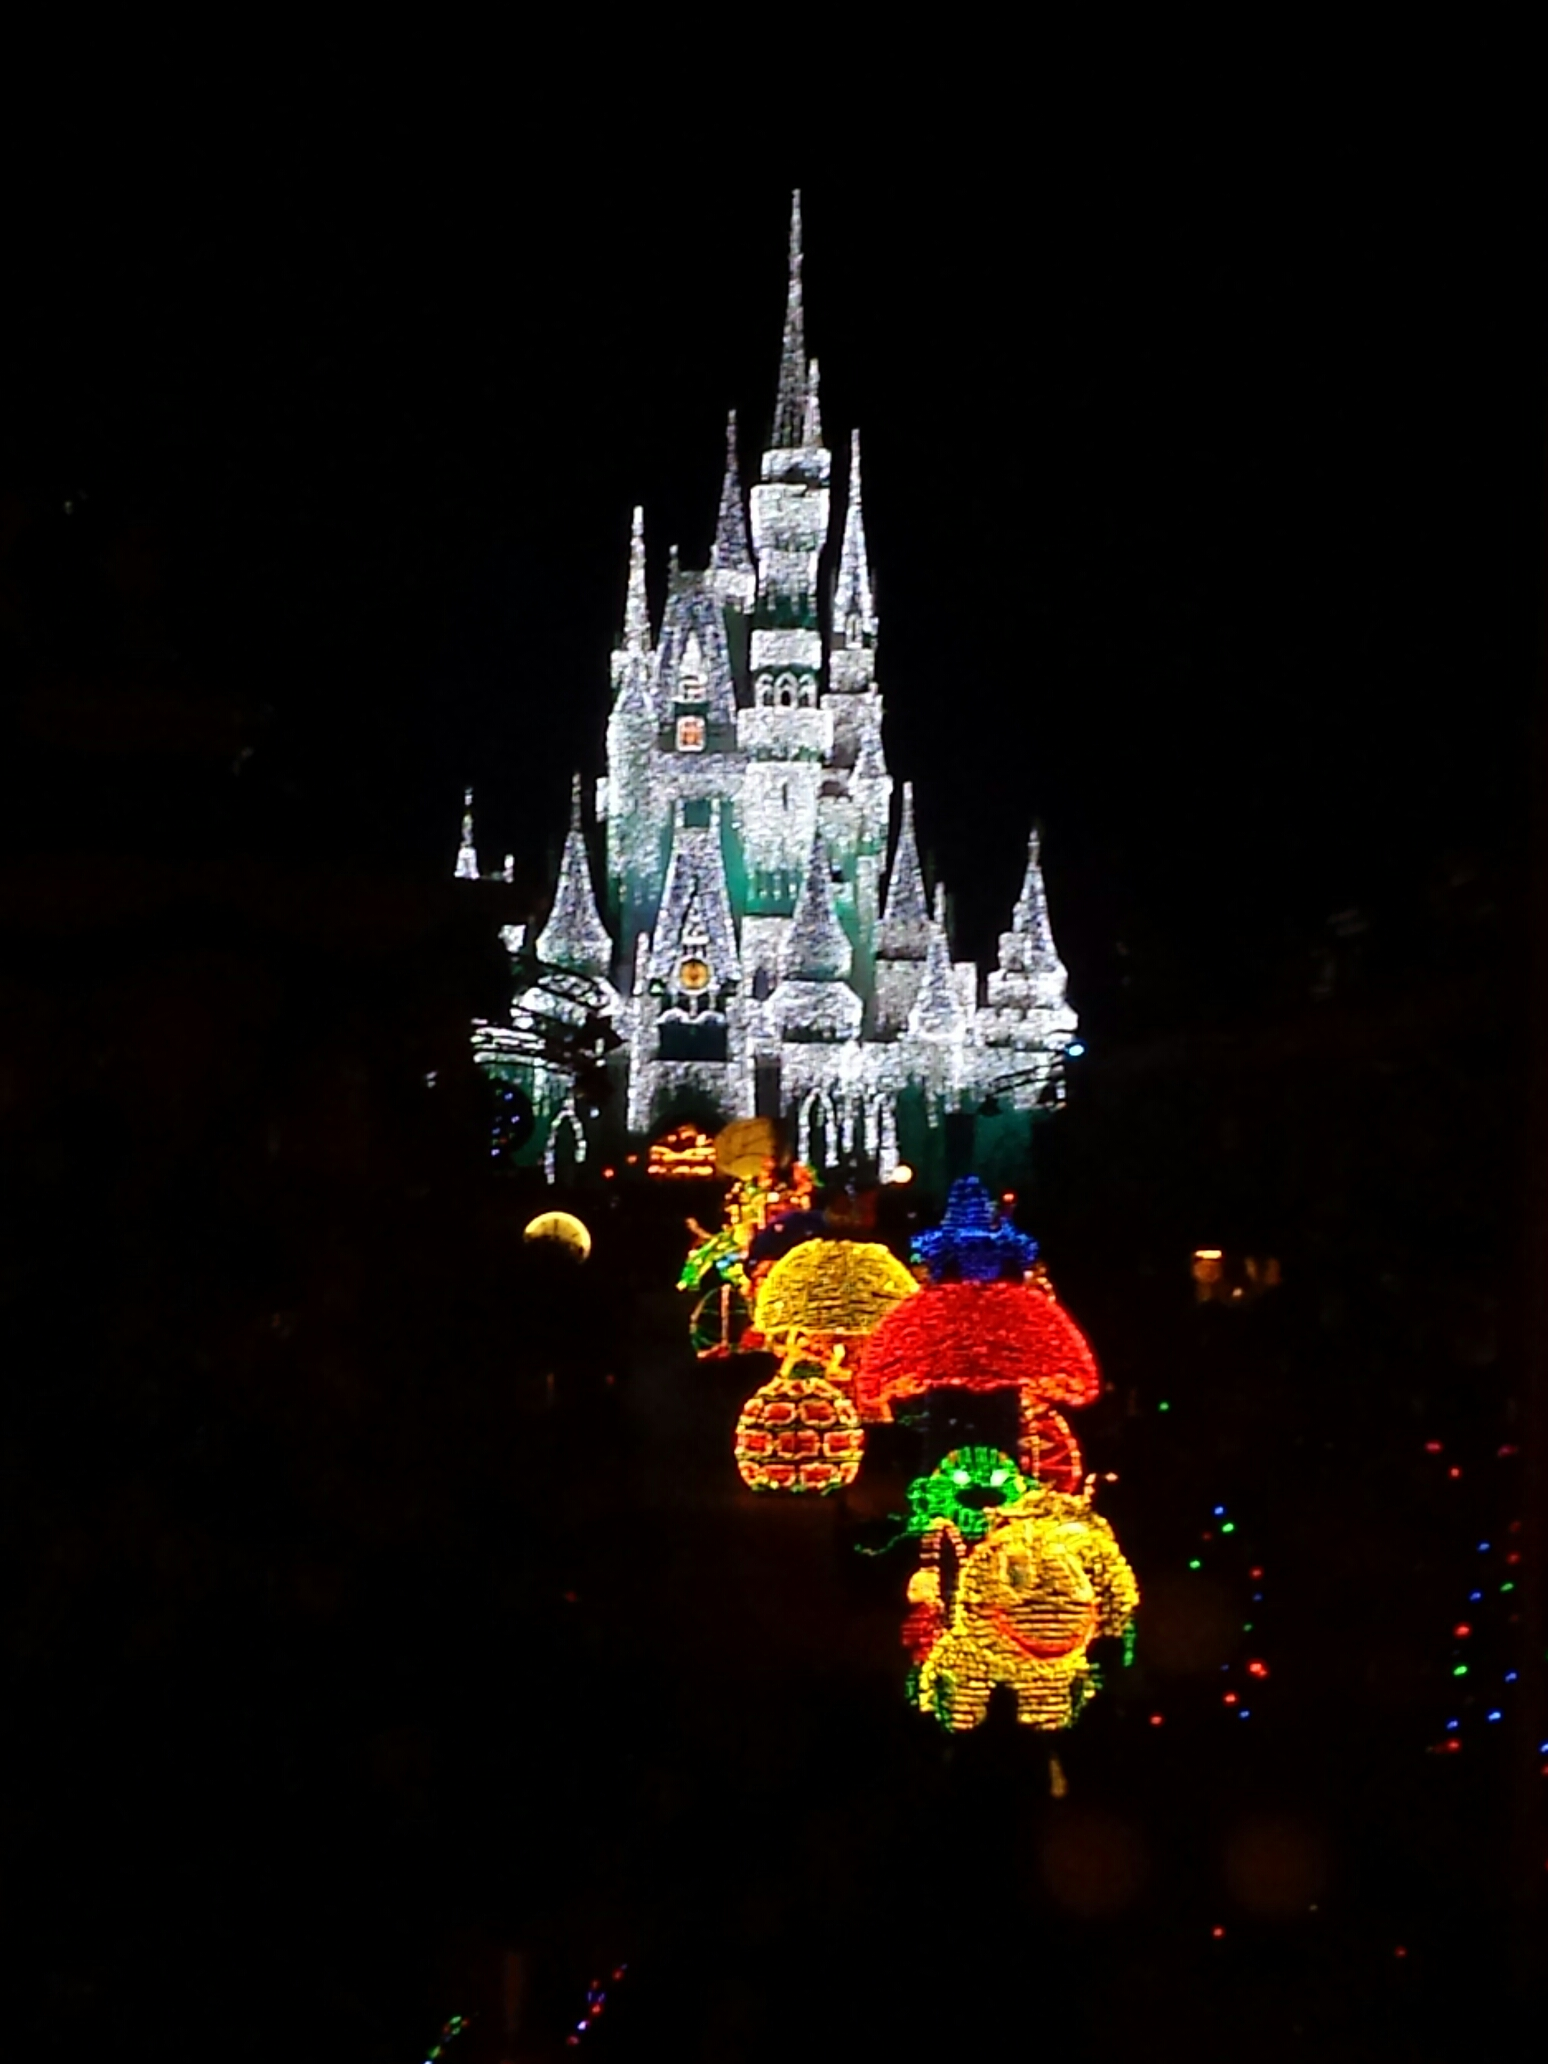 The Main Street Electrical Parade working its way up Main Street toward Cinderella Castle.